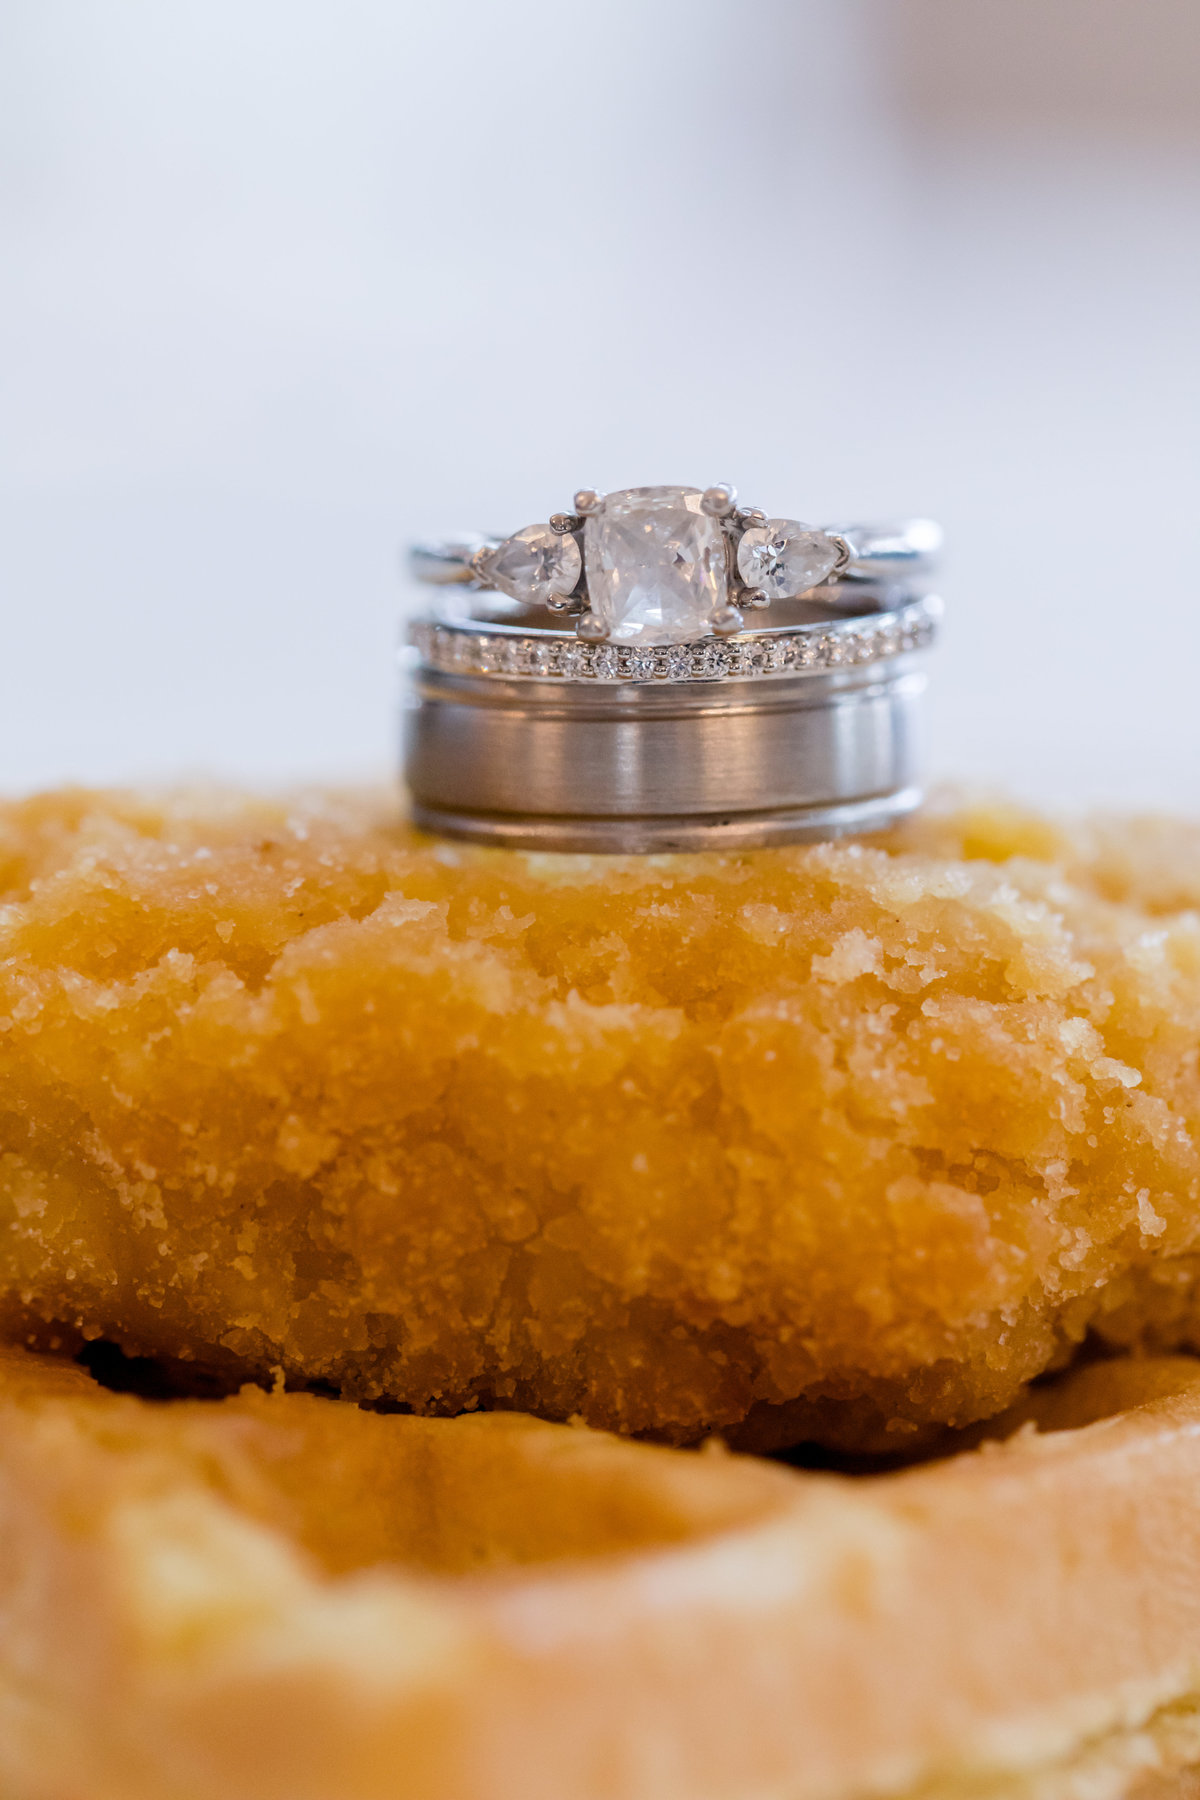 Wedding rings on top of chicken and waffles at Ospreys at Belmont Bay in Woodbridge